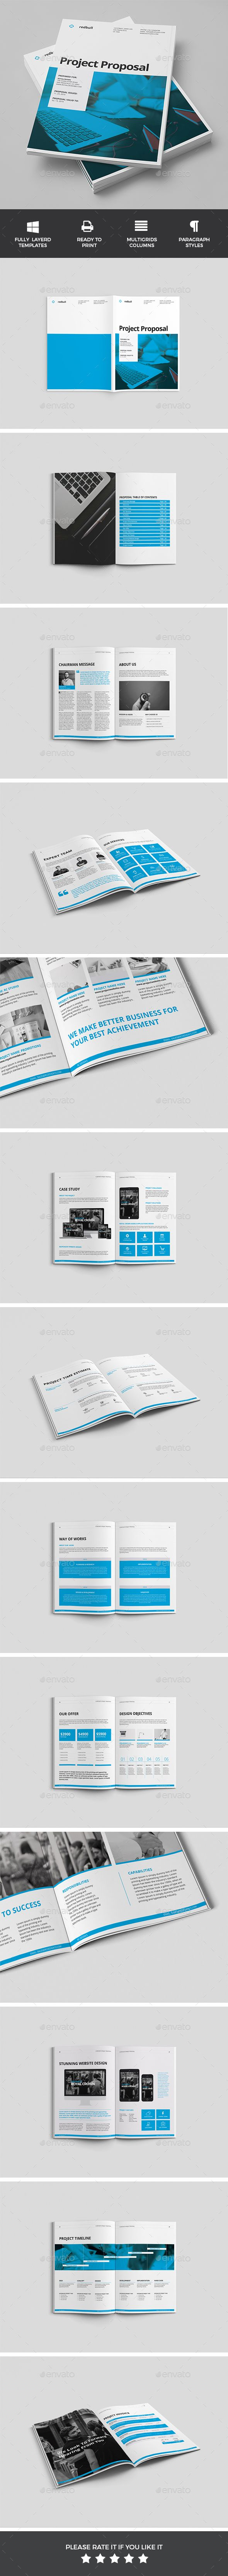 Clean Project Proposal Template InDesign INDD #design Download: http://graphicriver.net/item/proposal/14260739?ref=ksioks